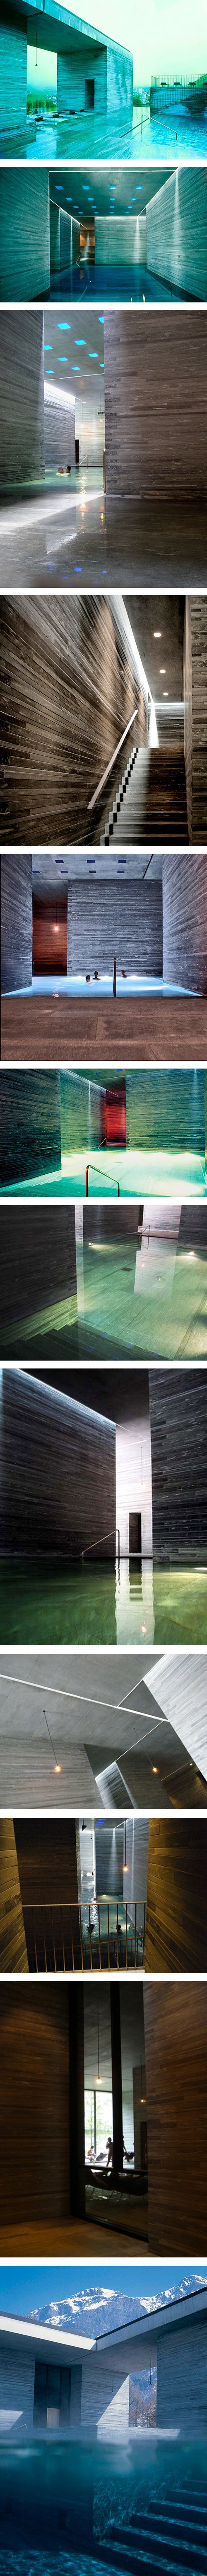 Hot Springs in Vals (Switzerland) by Pritzker Award Winner 2009 Peter Zumthor.